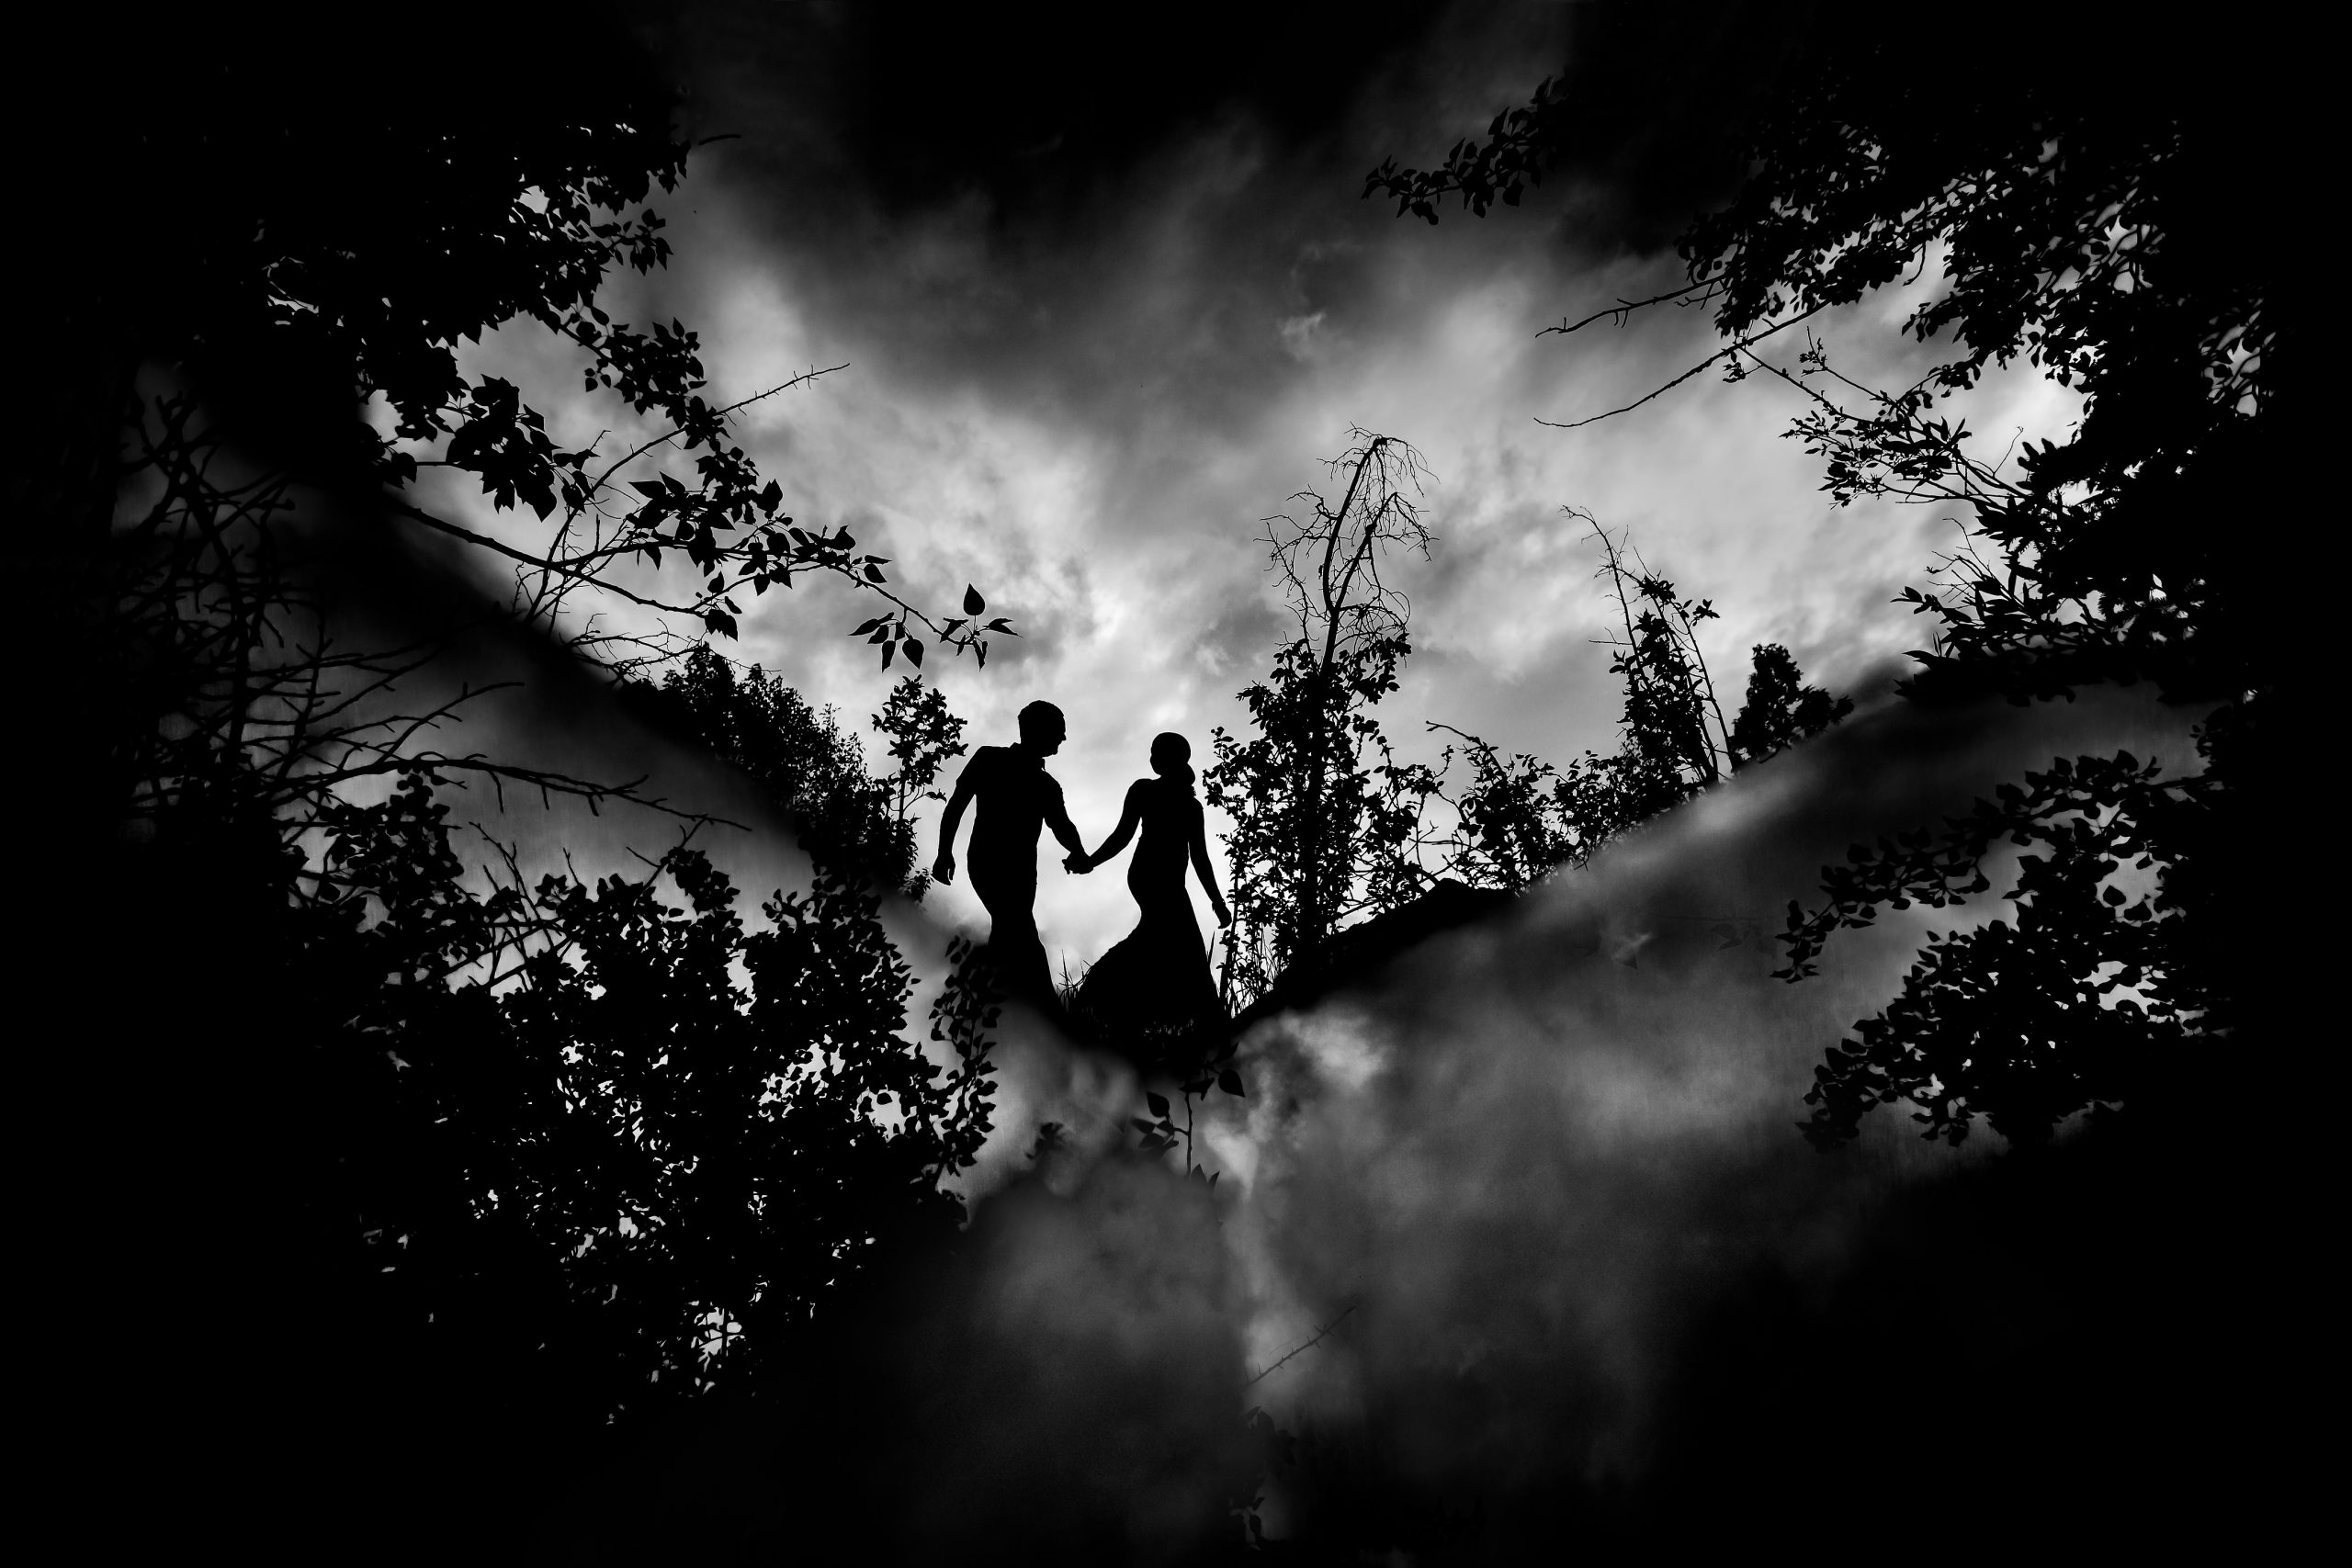 Silhouette of a couple holding hands surrounded by trees and fog